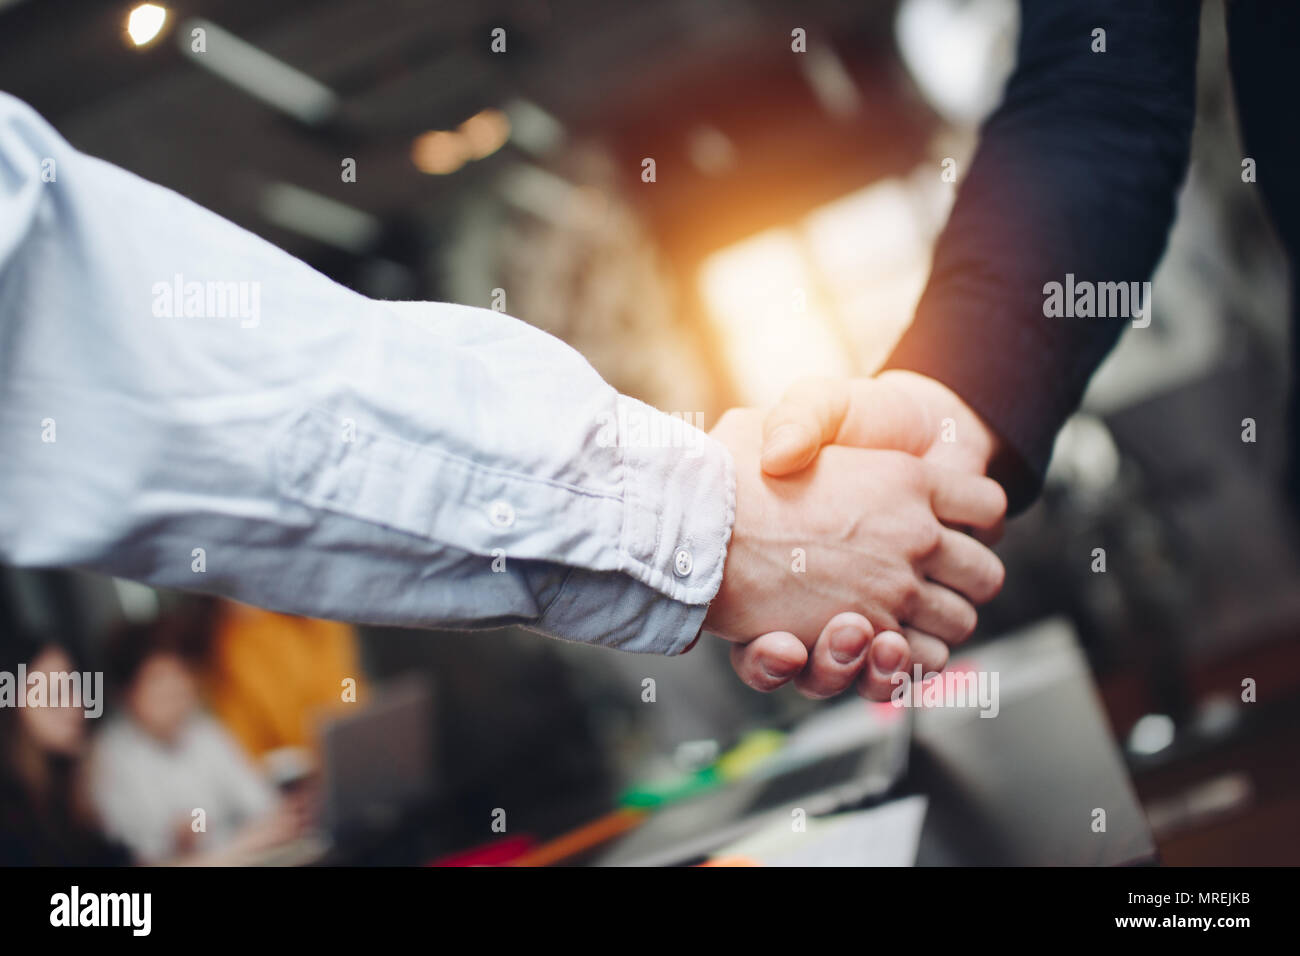 Group of engineers shake hands after successfully solving issues. Lens flare effect. - Stock Image